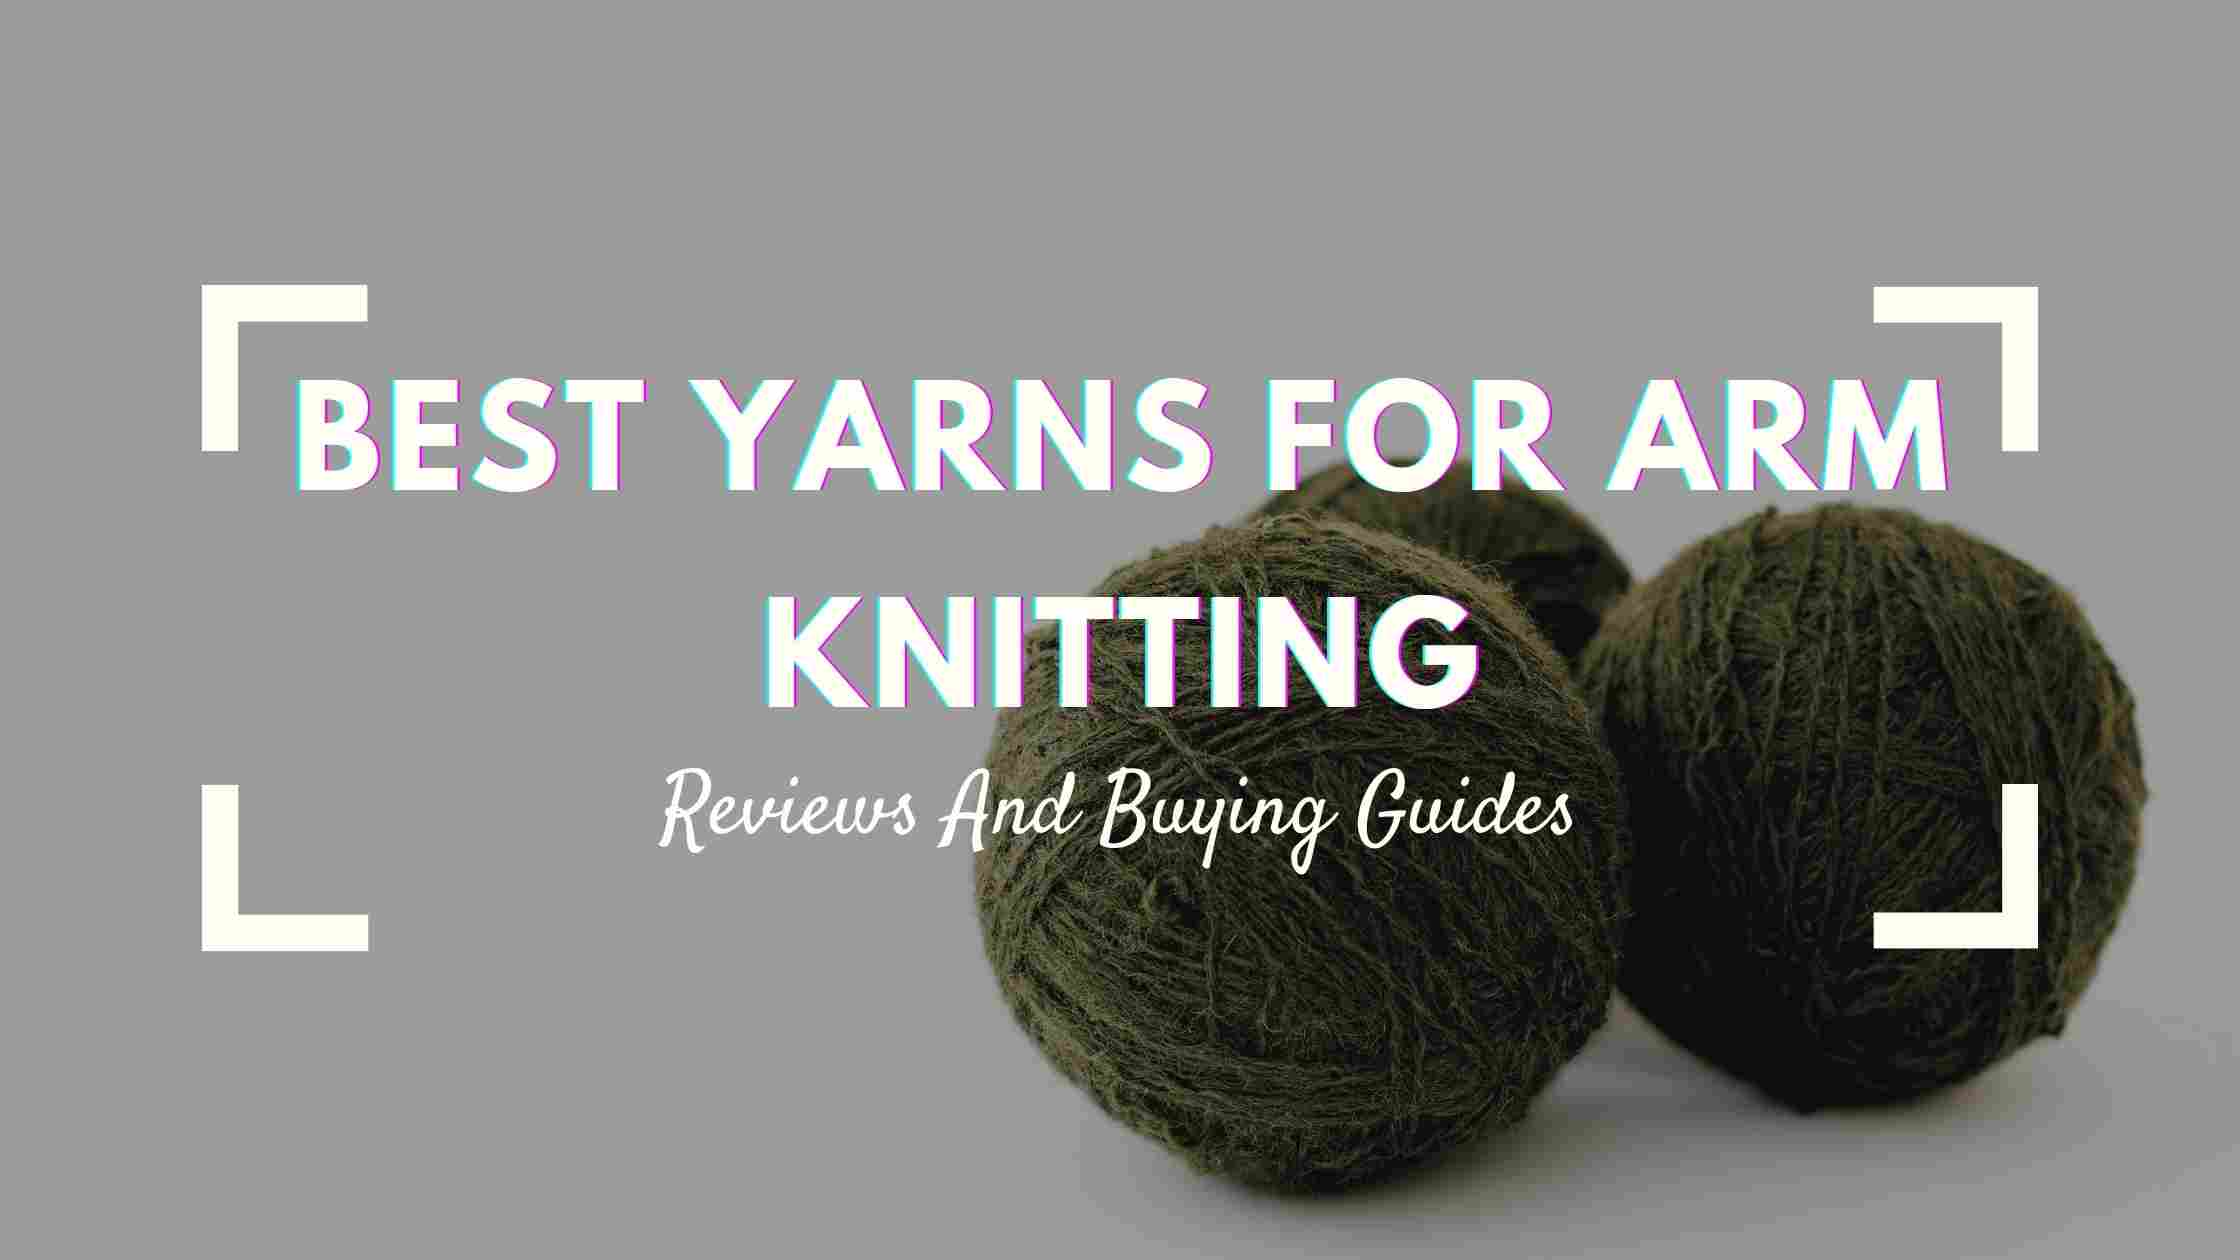 BEST YARNS FOR ARM KNITTING